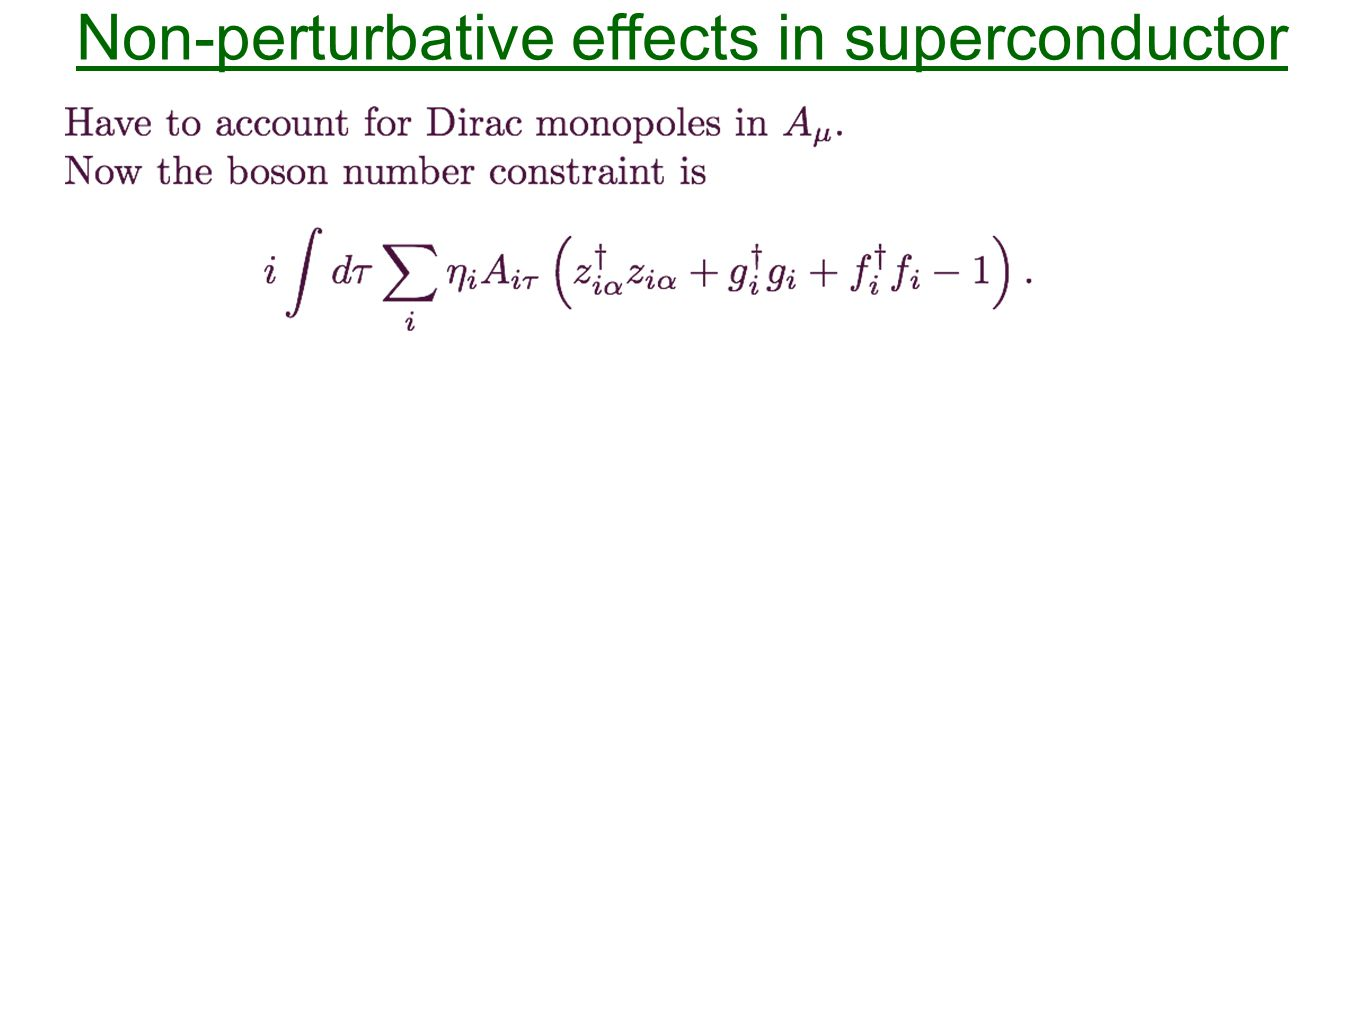 Non-perturbative effects in superconductor